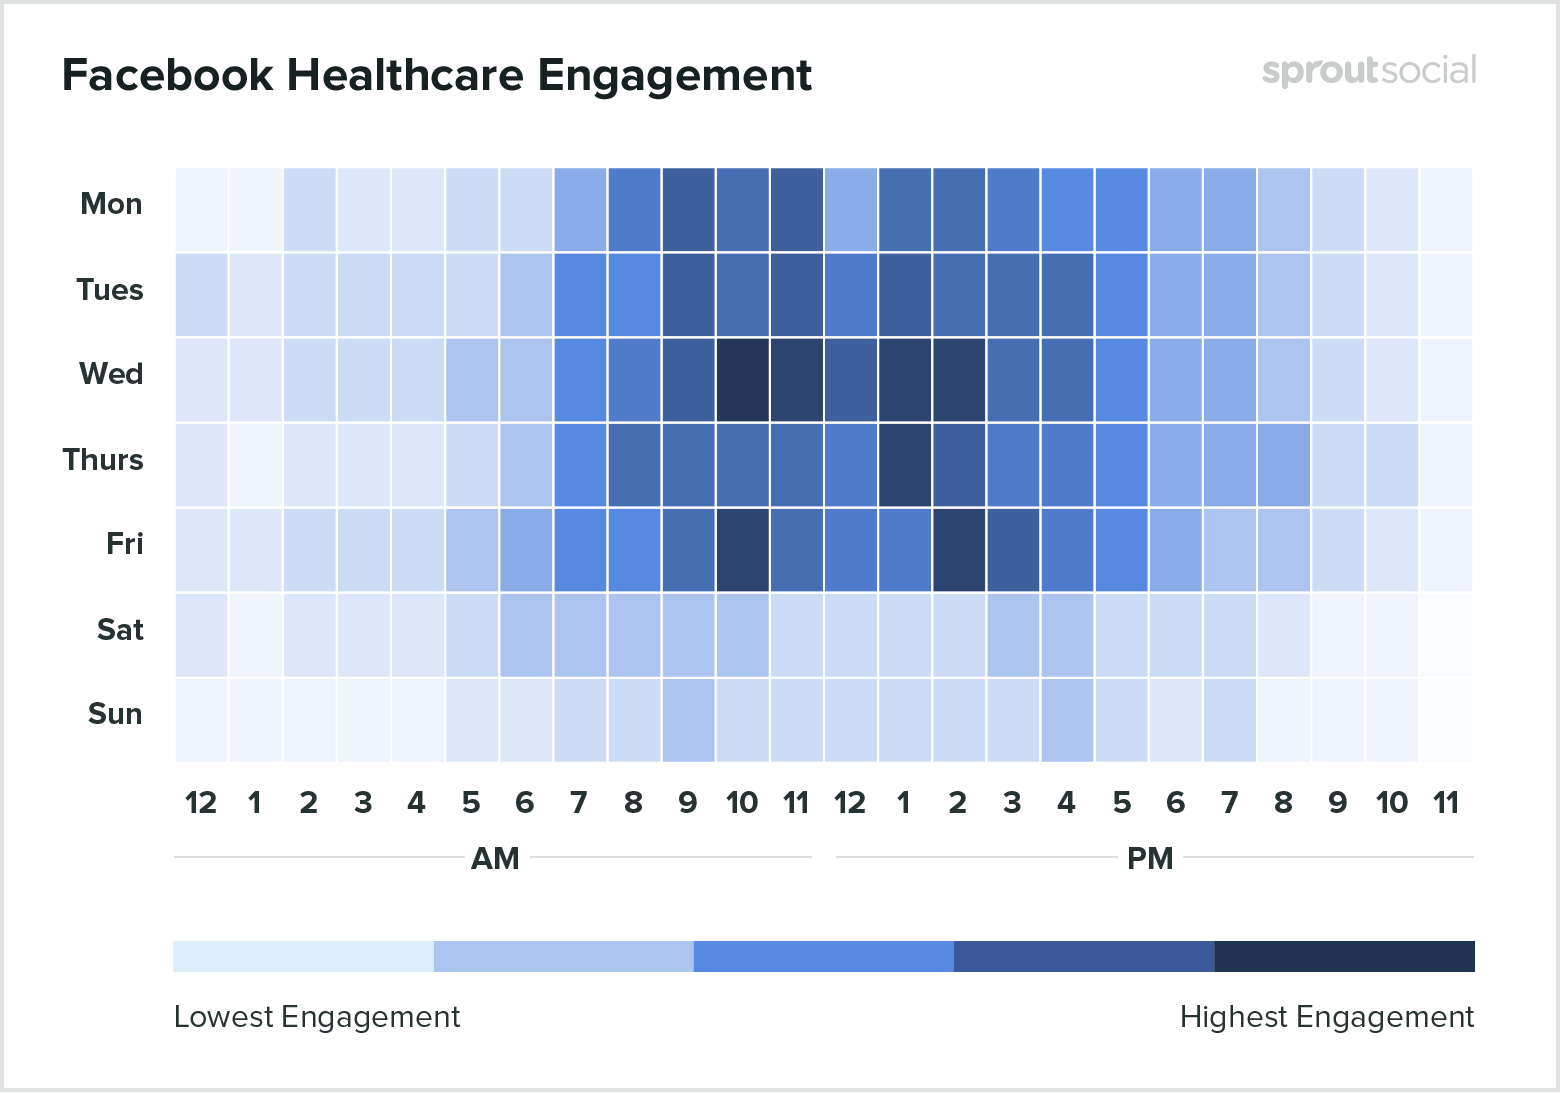 Best times to post on Facebook for healthcare 2020